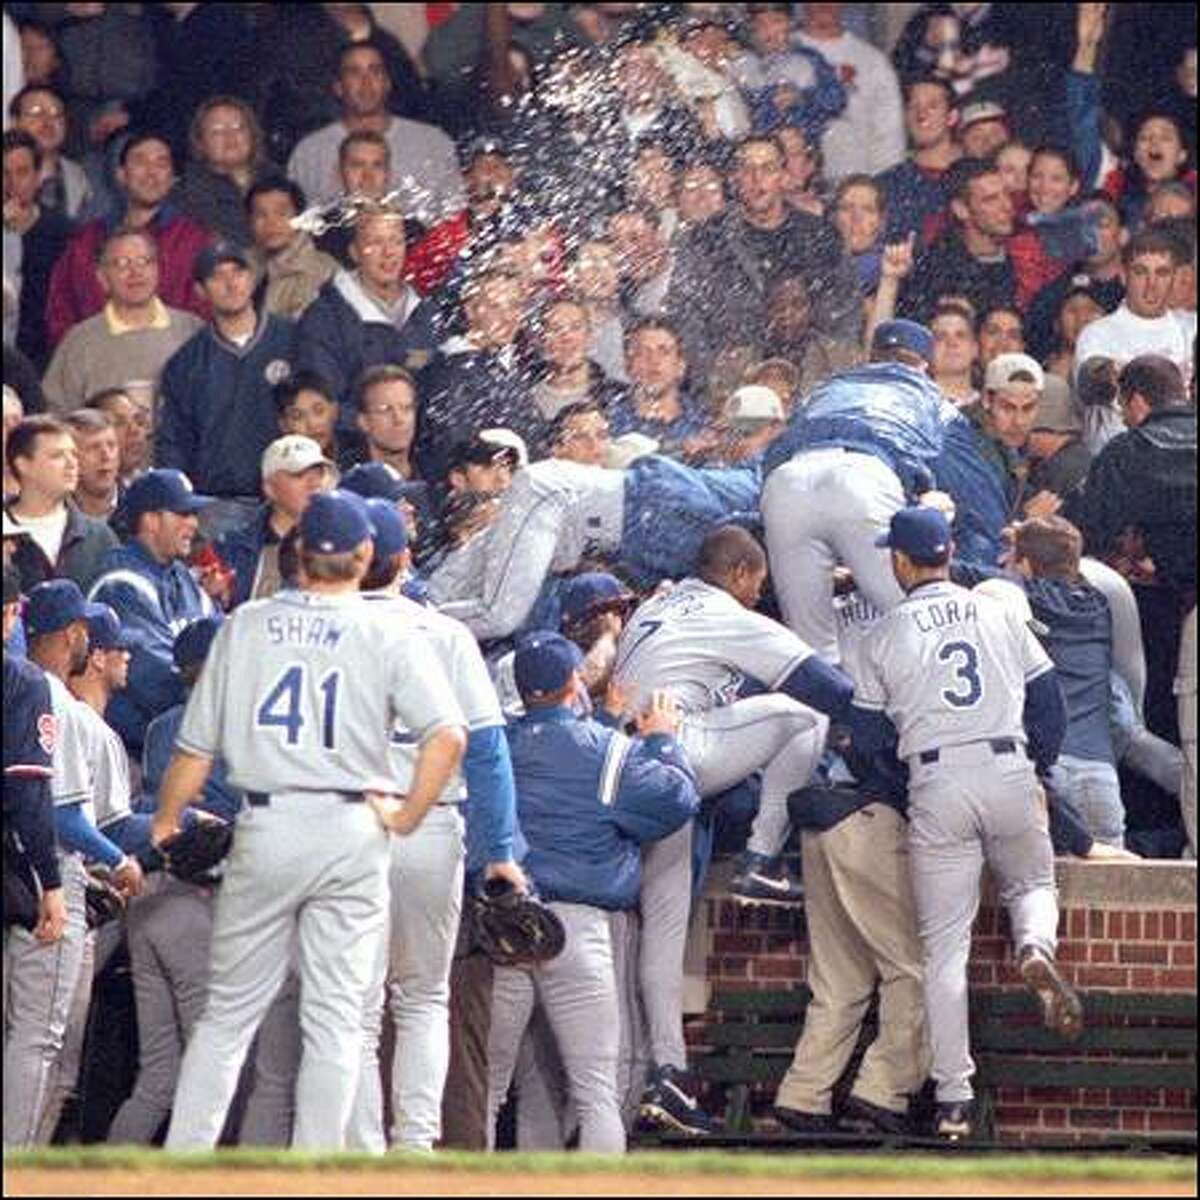 Dodgers players charge into the Wrigley Field stands during a 2000 game against the Cubs. Incidents of unruly fans acting out on their anger seem more prevalent in the age of multimillion-dollar salaries.